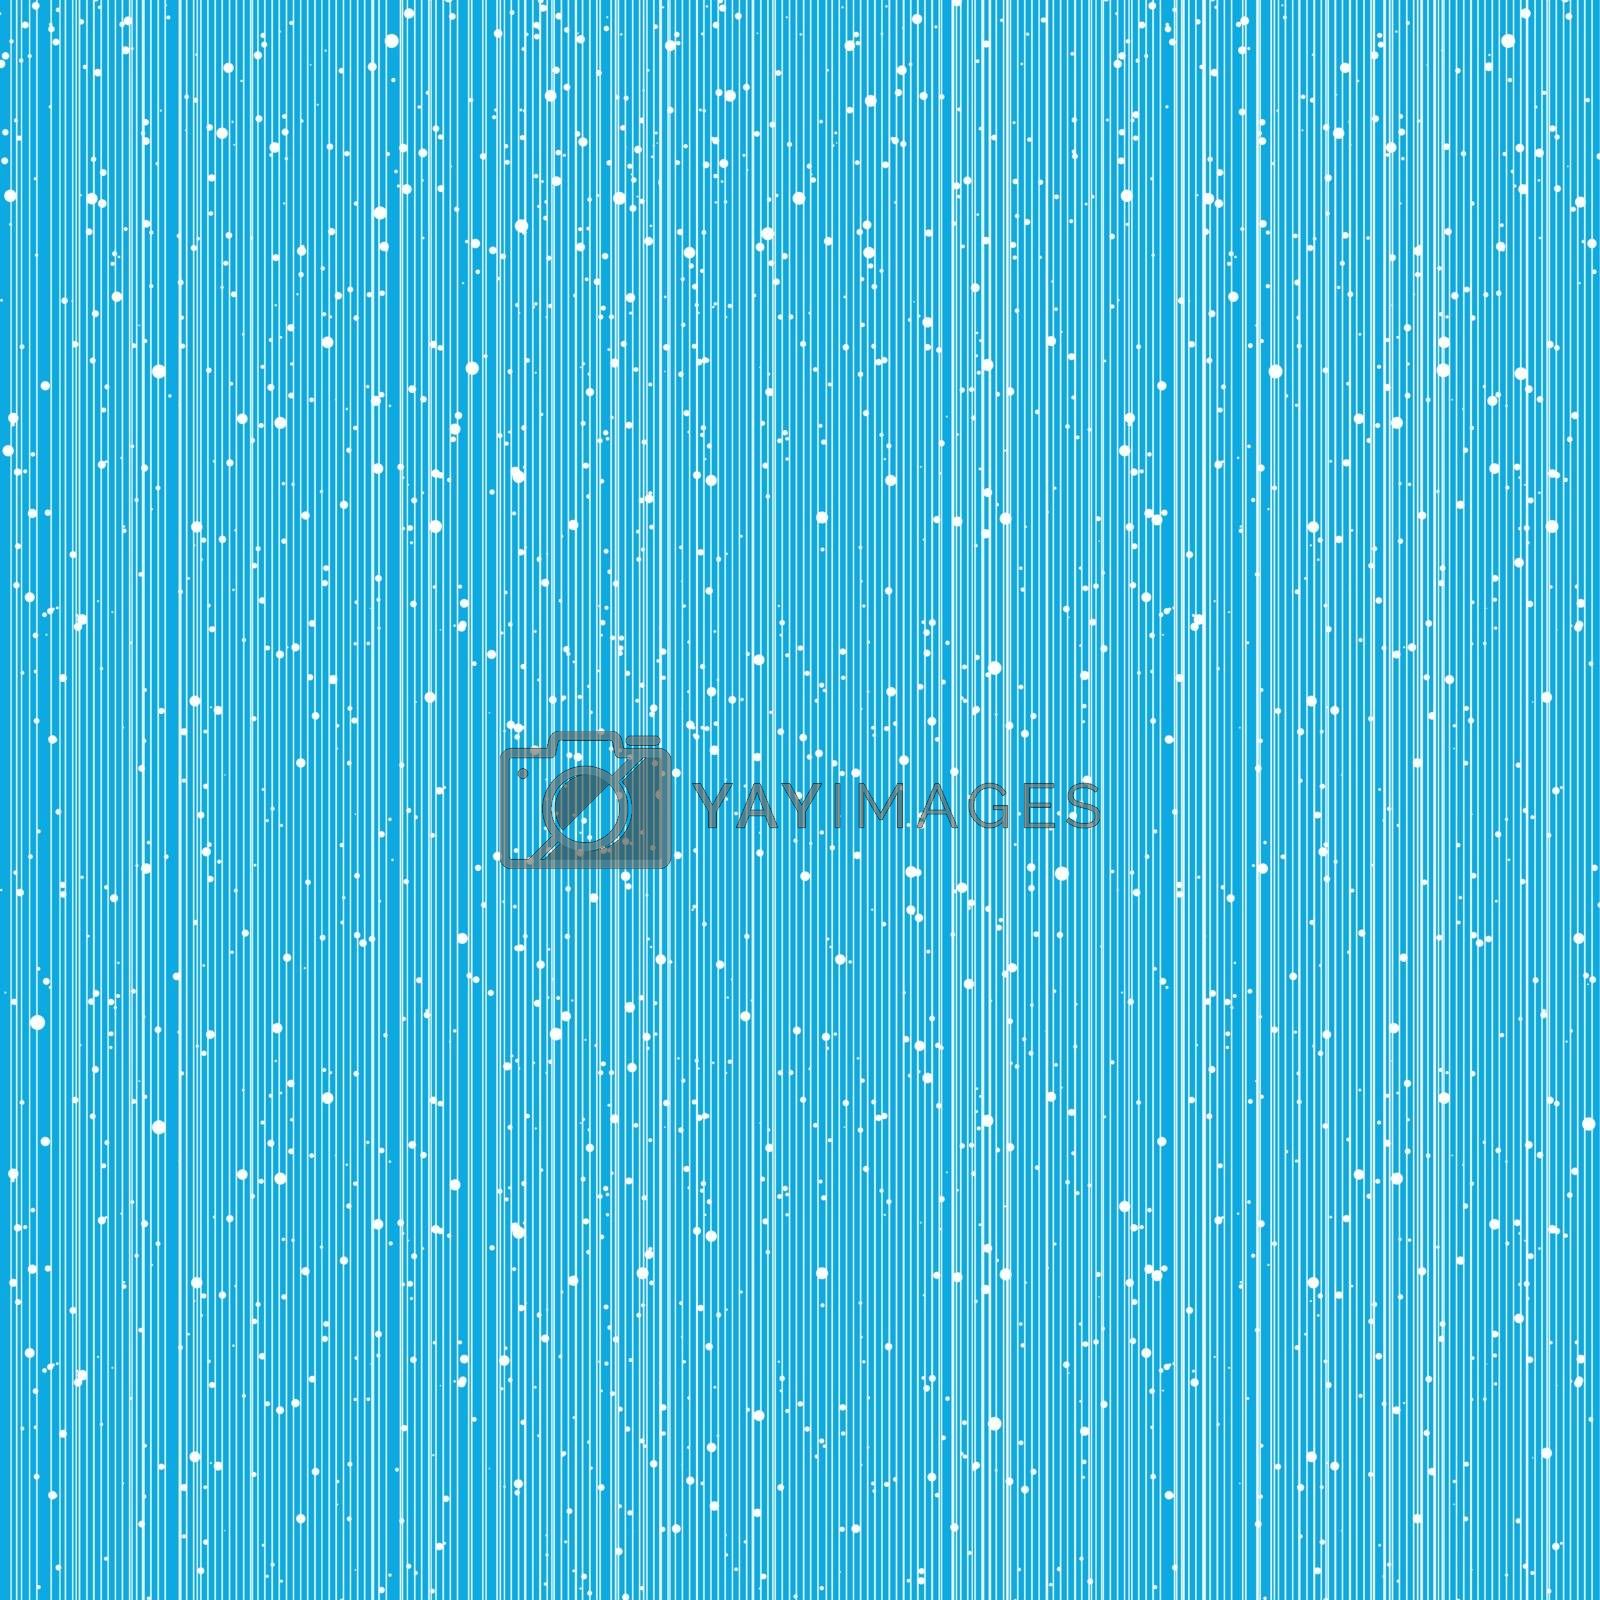 Abstract lines pattern and grunge brush texture on blue background. Vector illustration